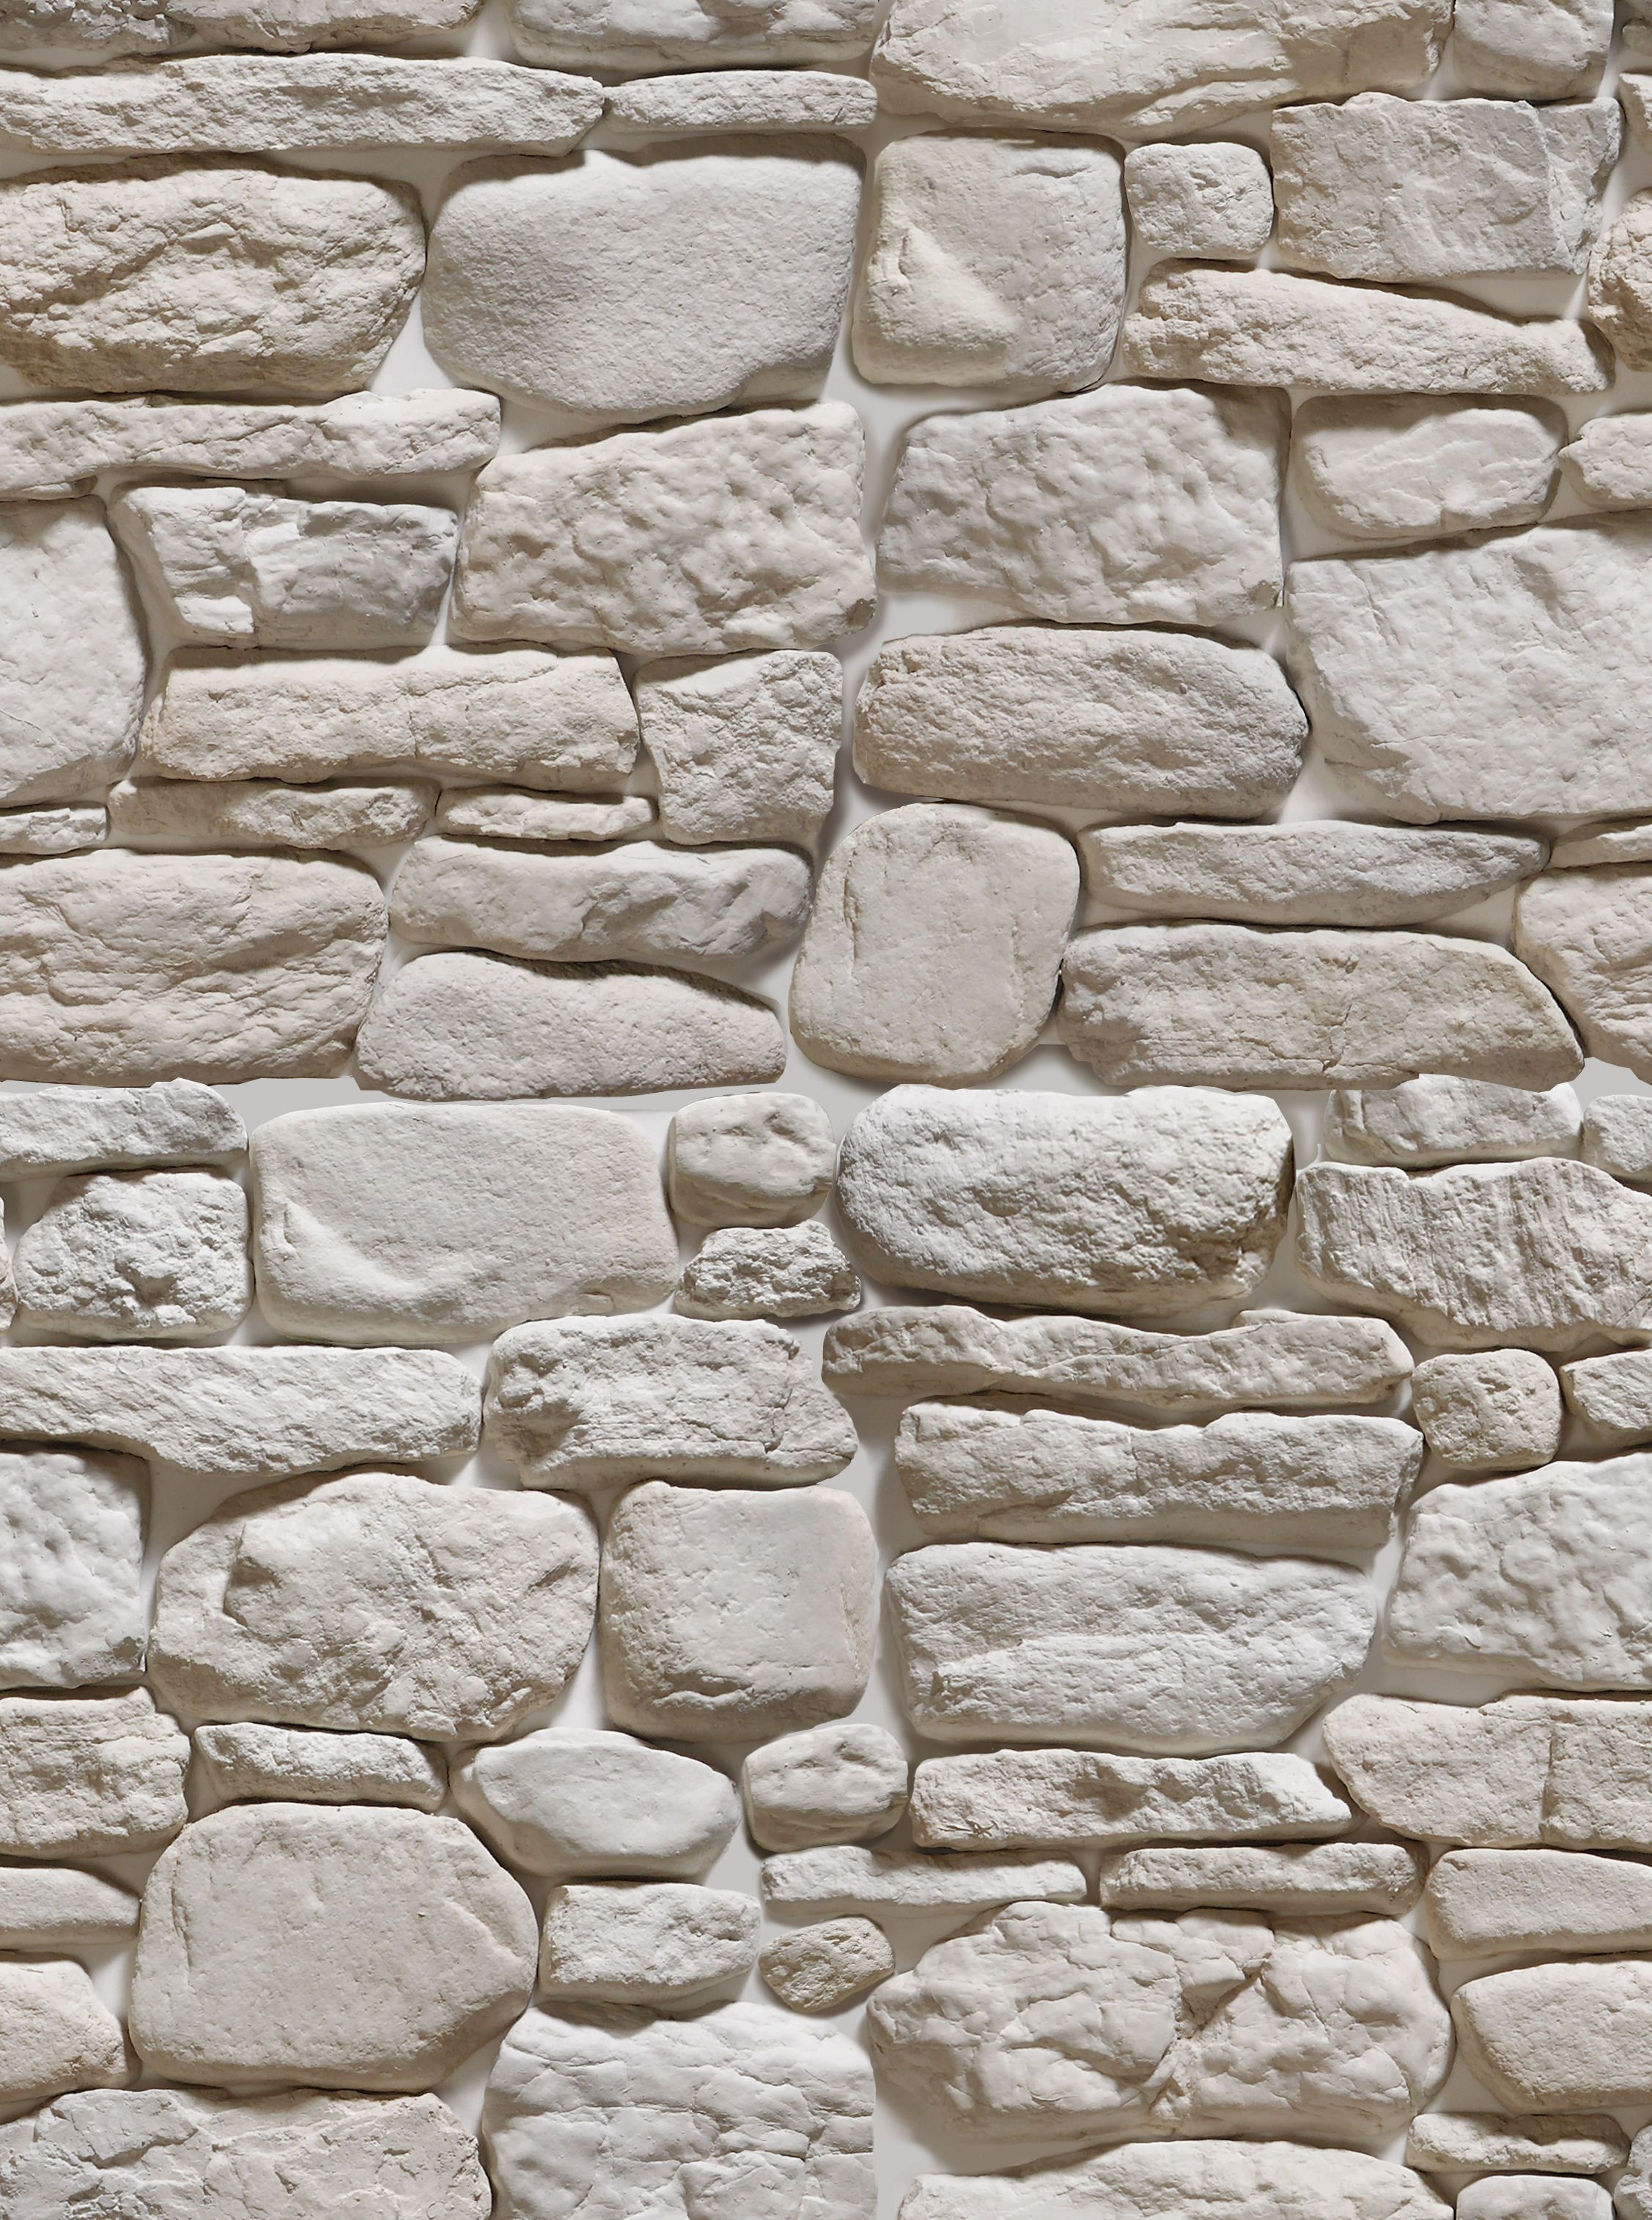 Stone Building Material : круглые stones stone wall texture речной